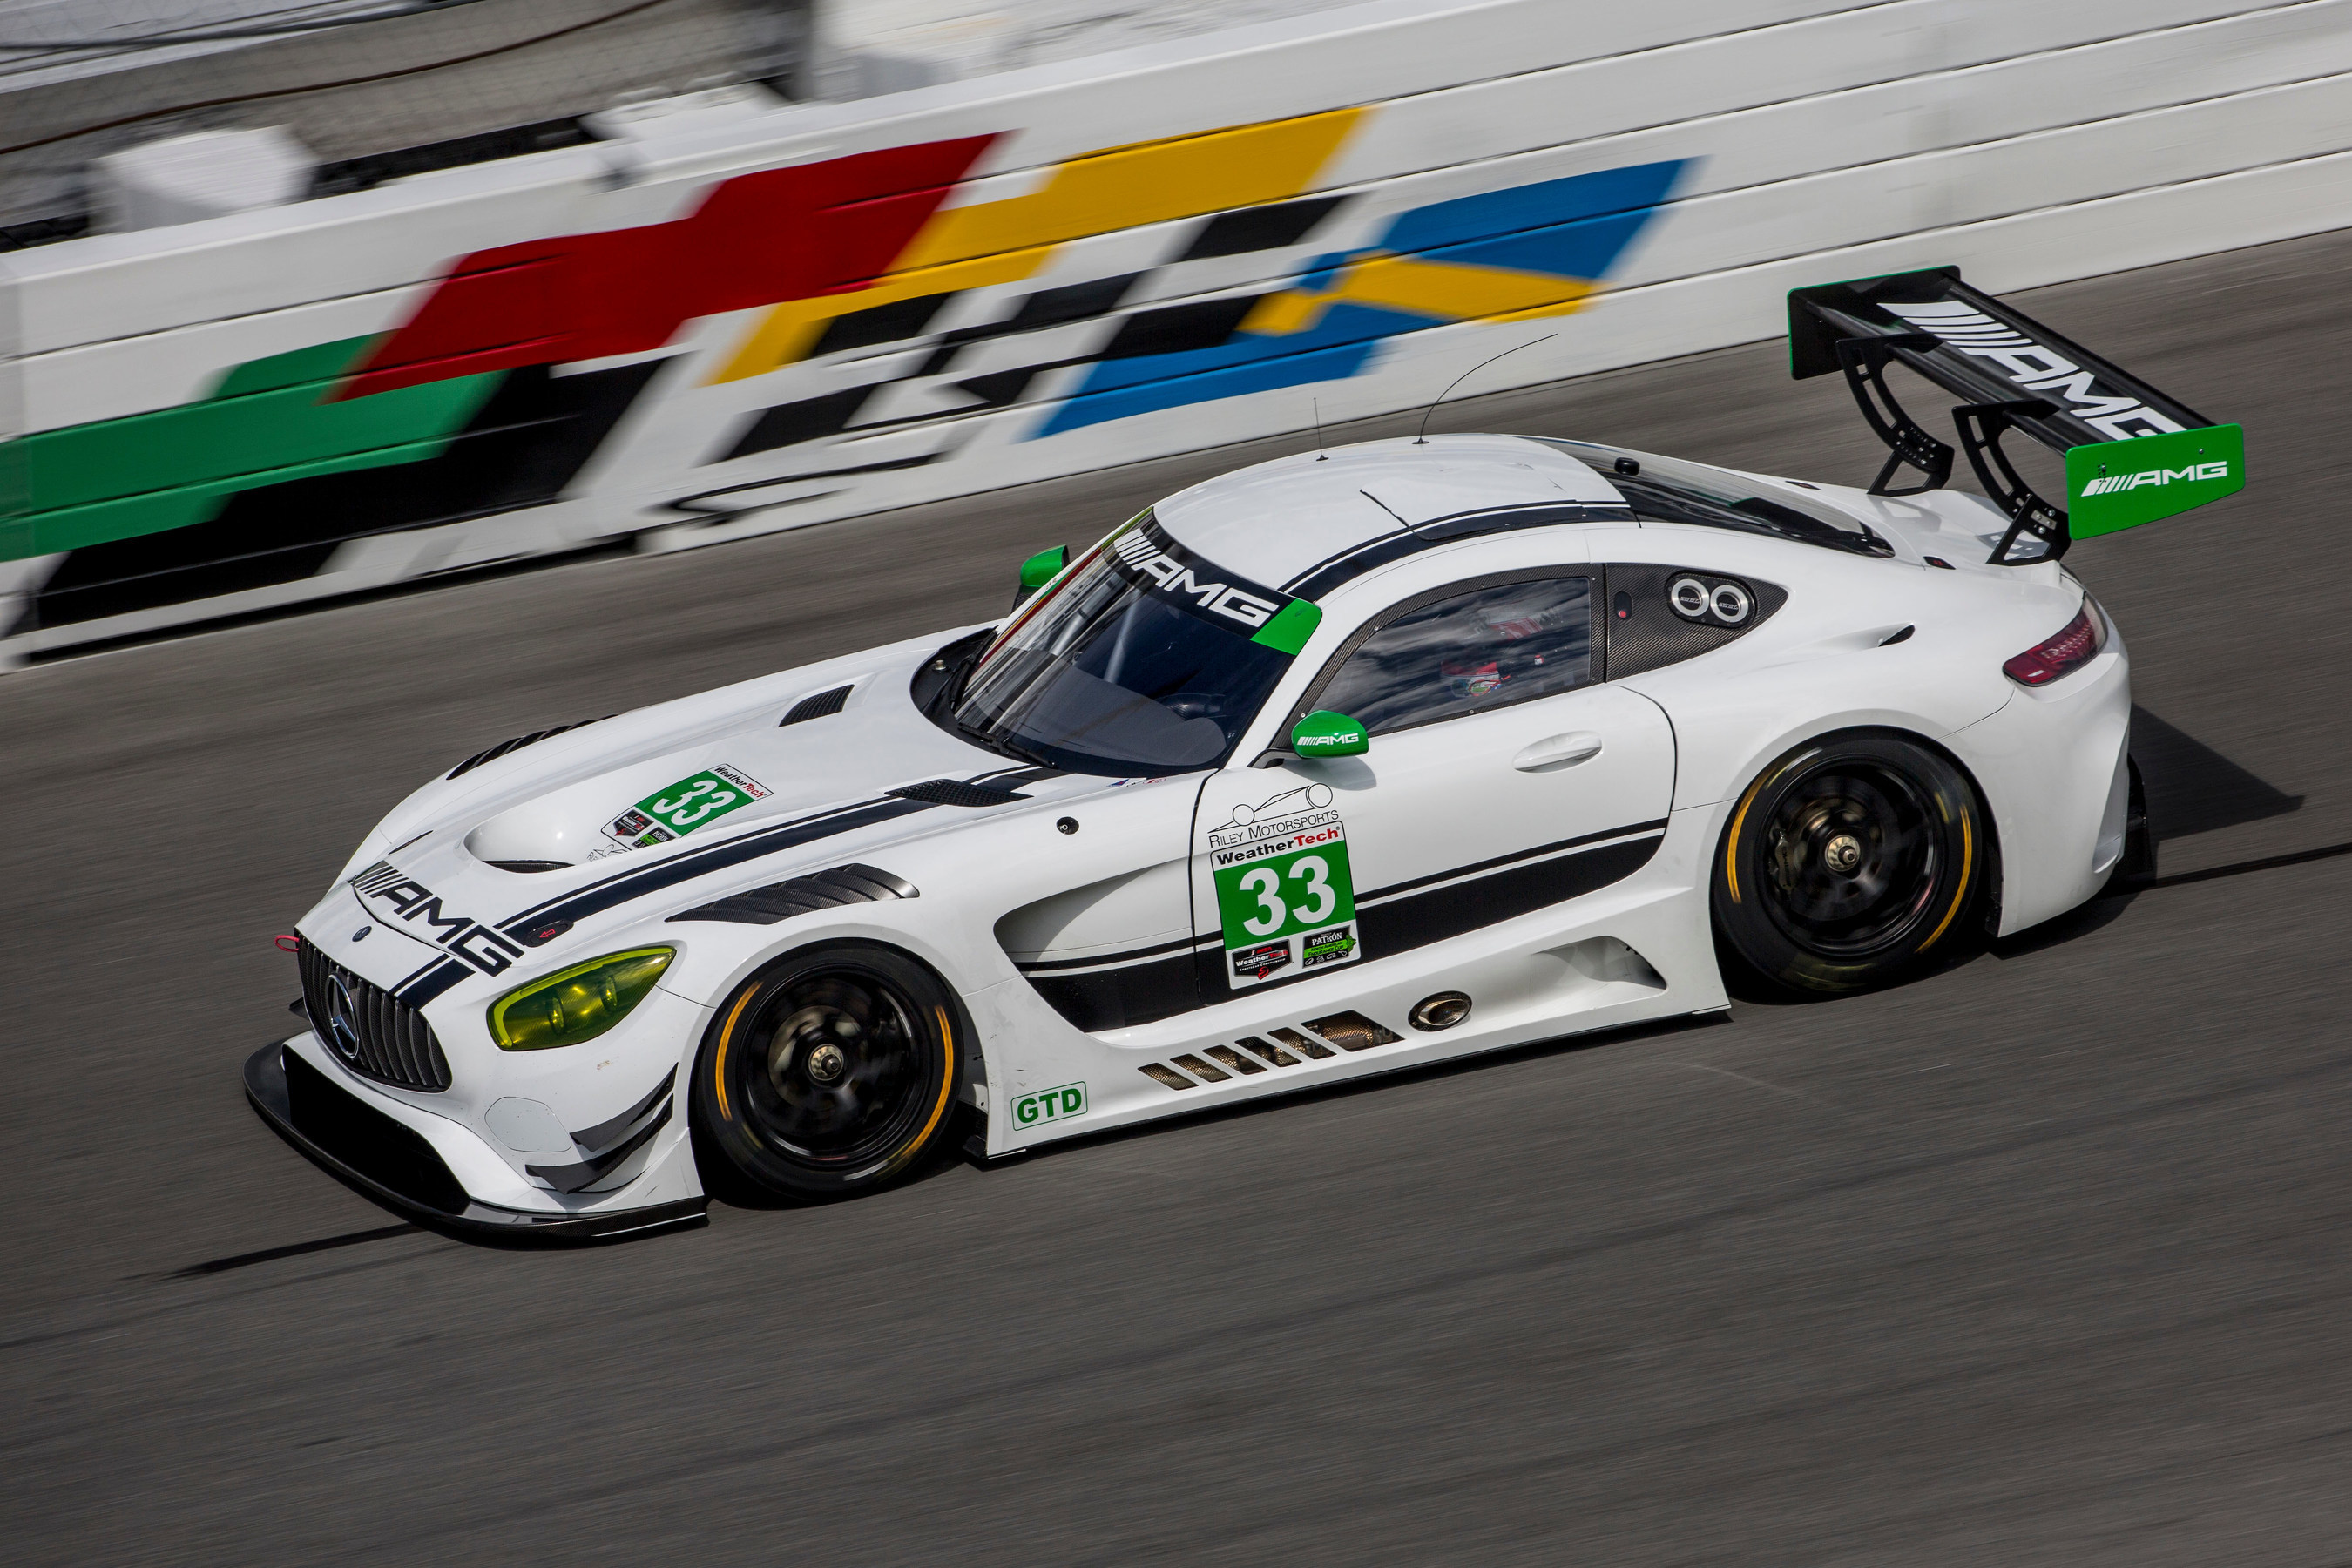 Mercedes-AMG Will Compete in 2017 IMSA WeatherTech Sports Car Championship